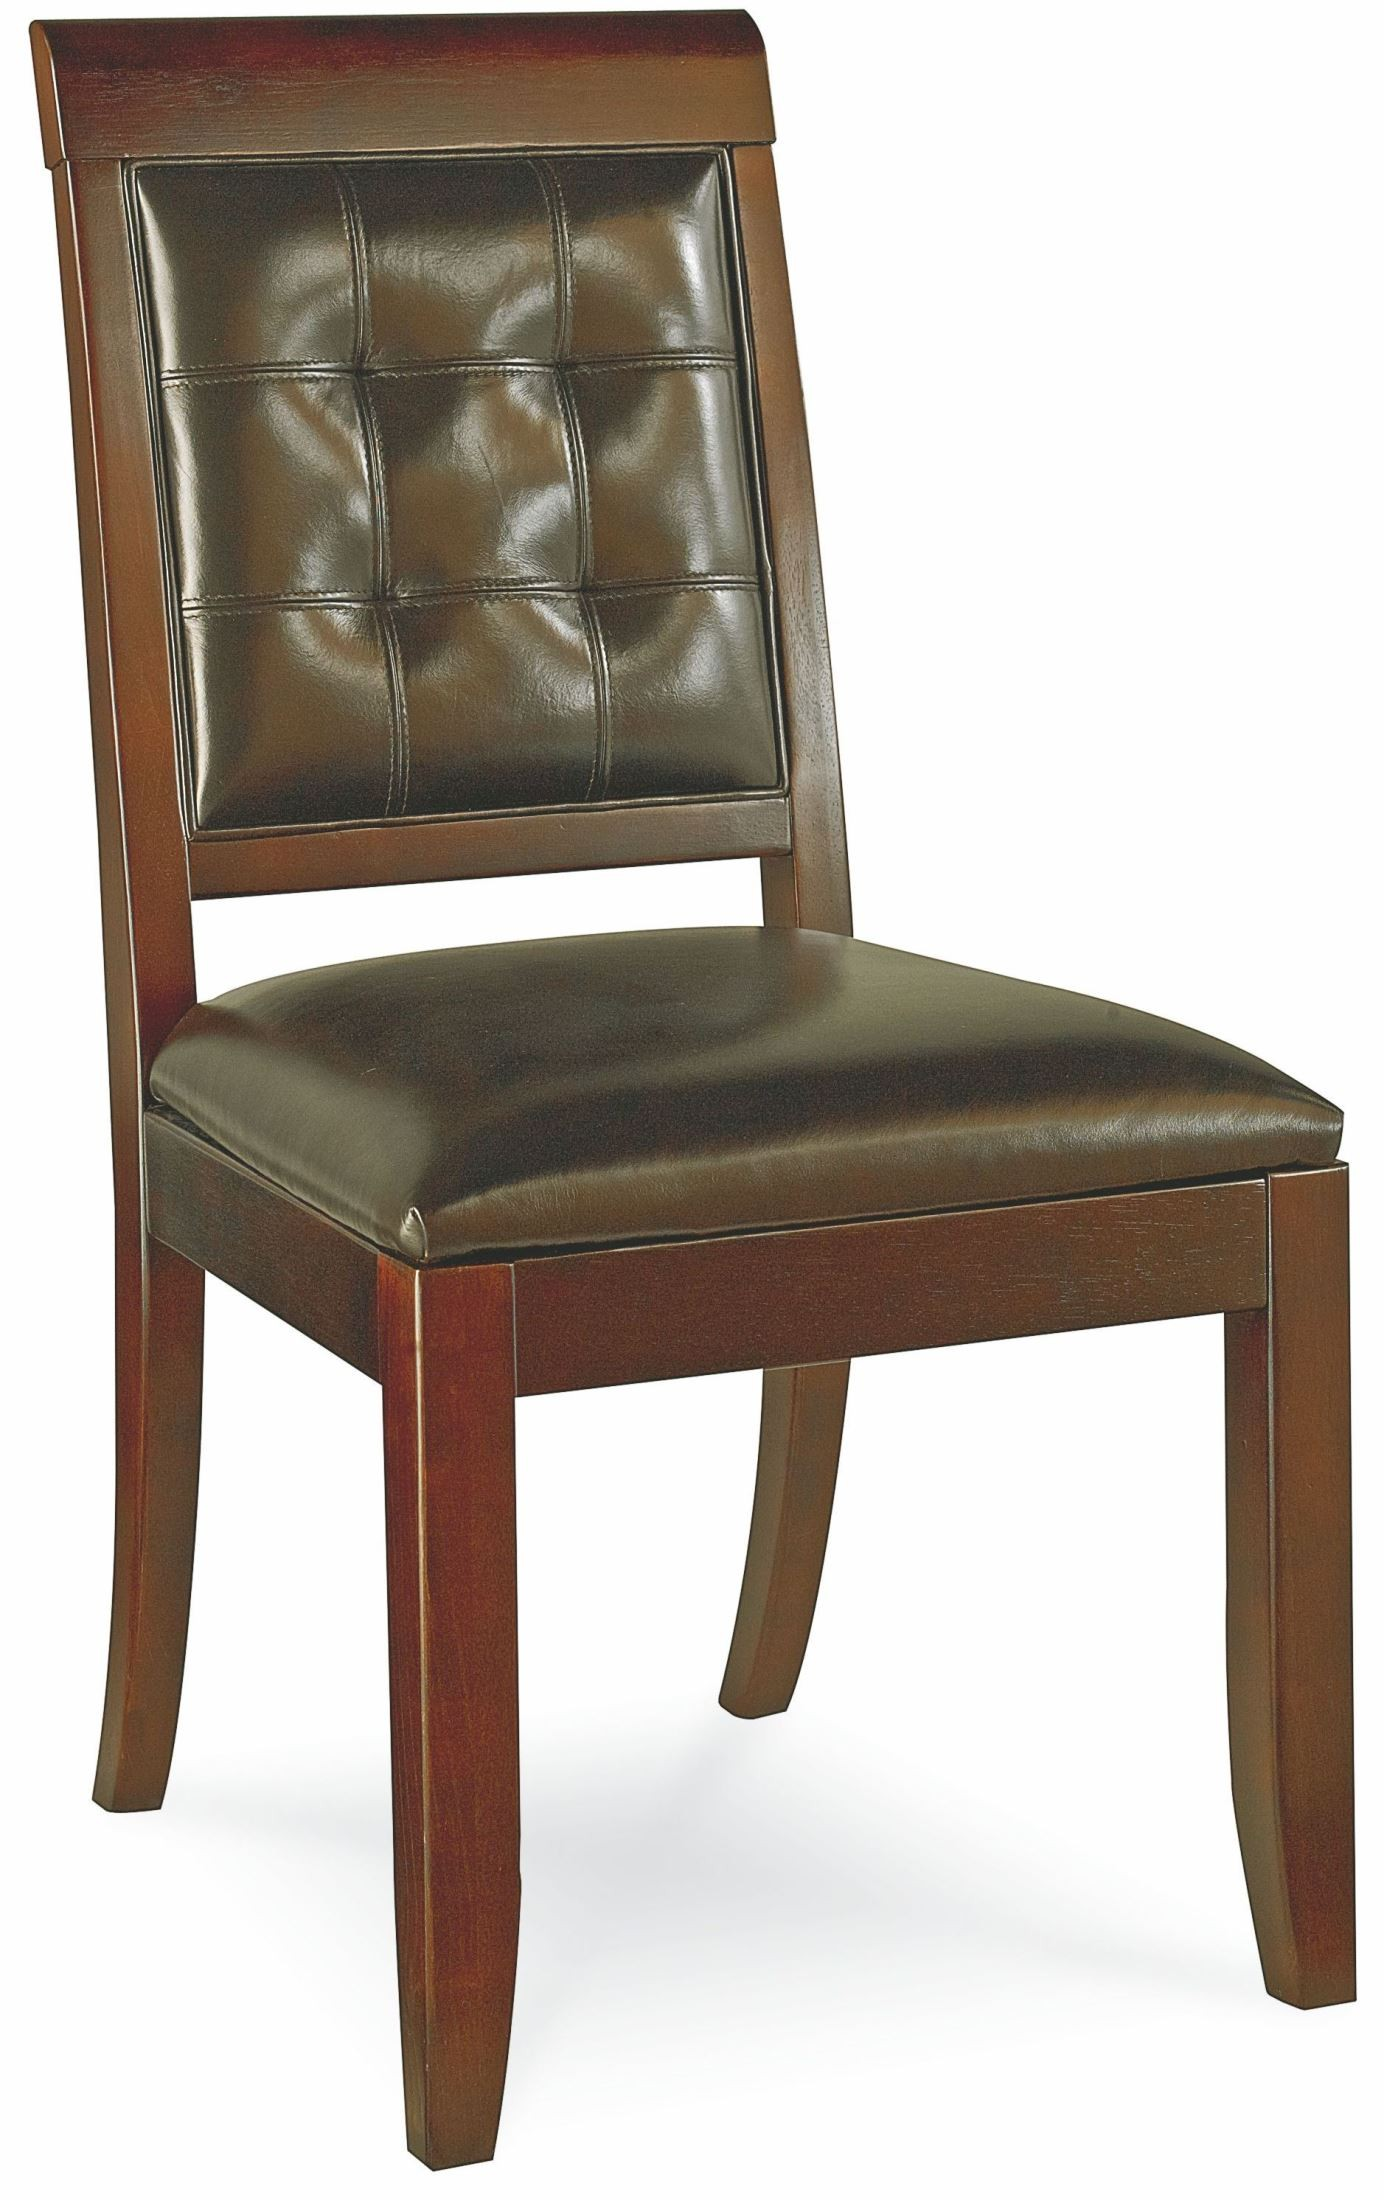 ... Leg Dining Room Set from American Drew (912-760)  Coleman Furniture